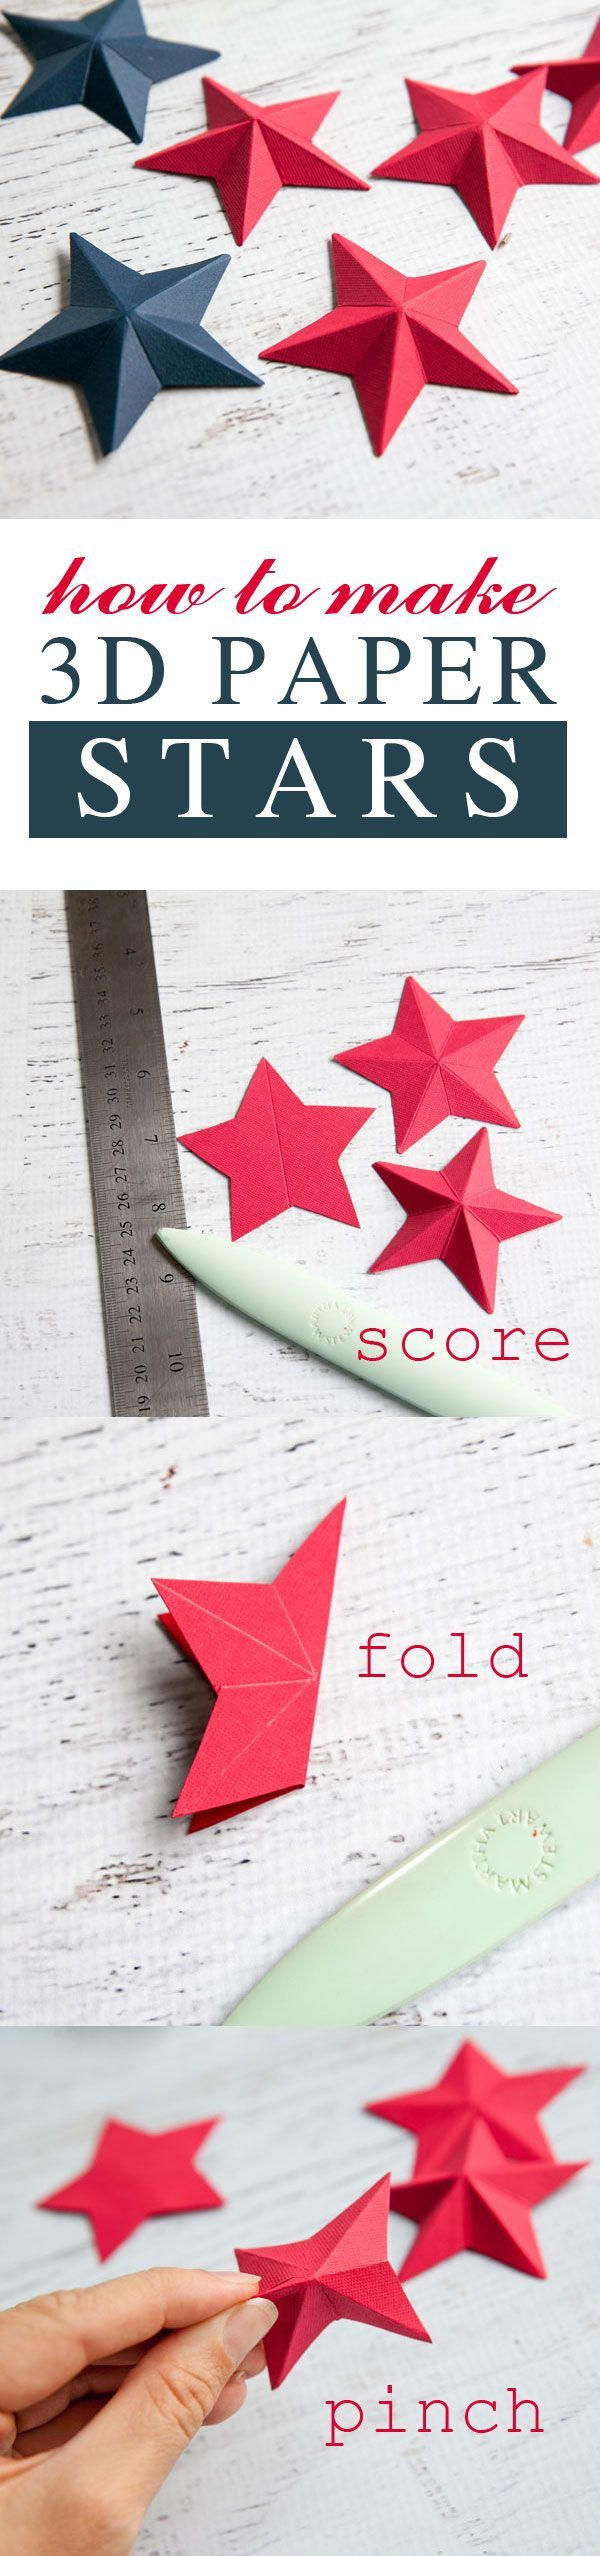 手机壳定制online shops philippines How to make D paper stars start with a star shape score five times along the points fold in half along each of the scores then pinch the ends to make them D Super easy and super cute